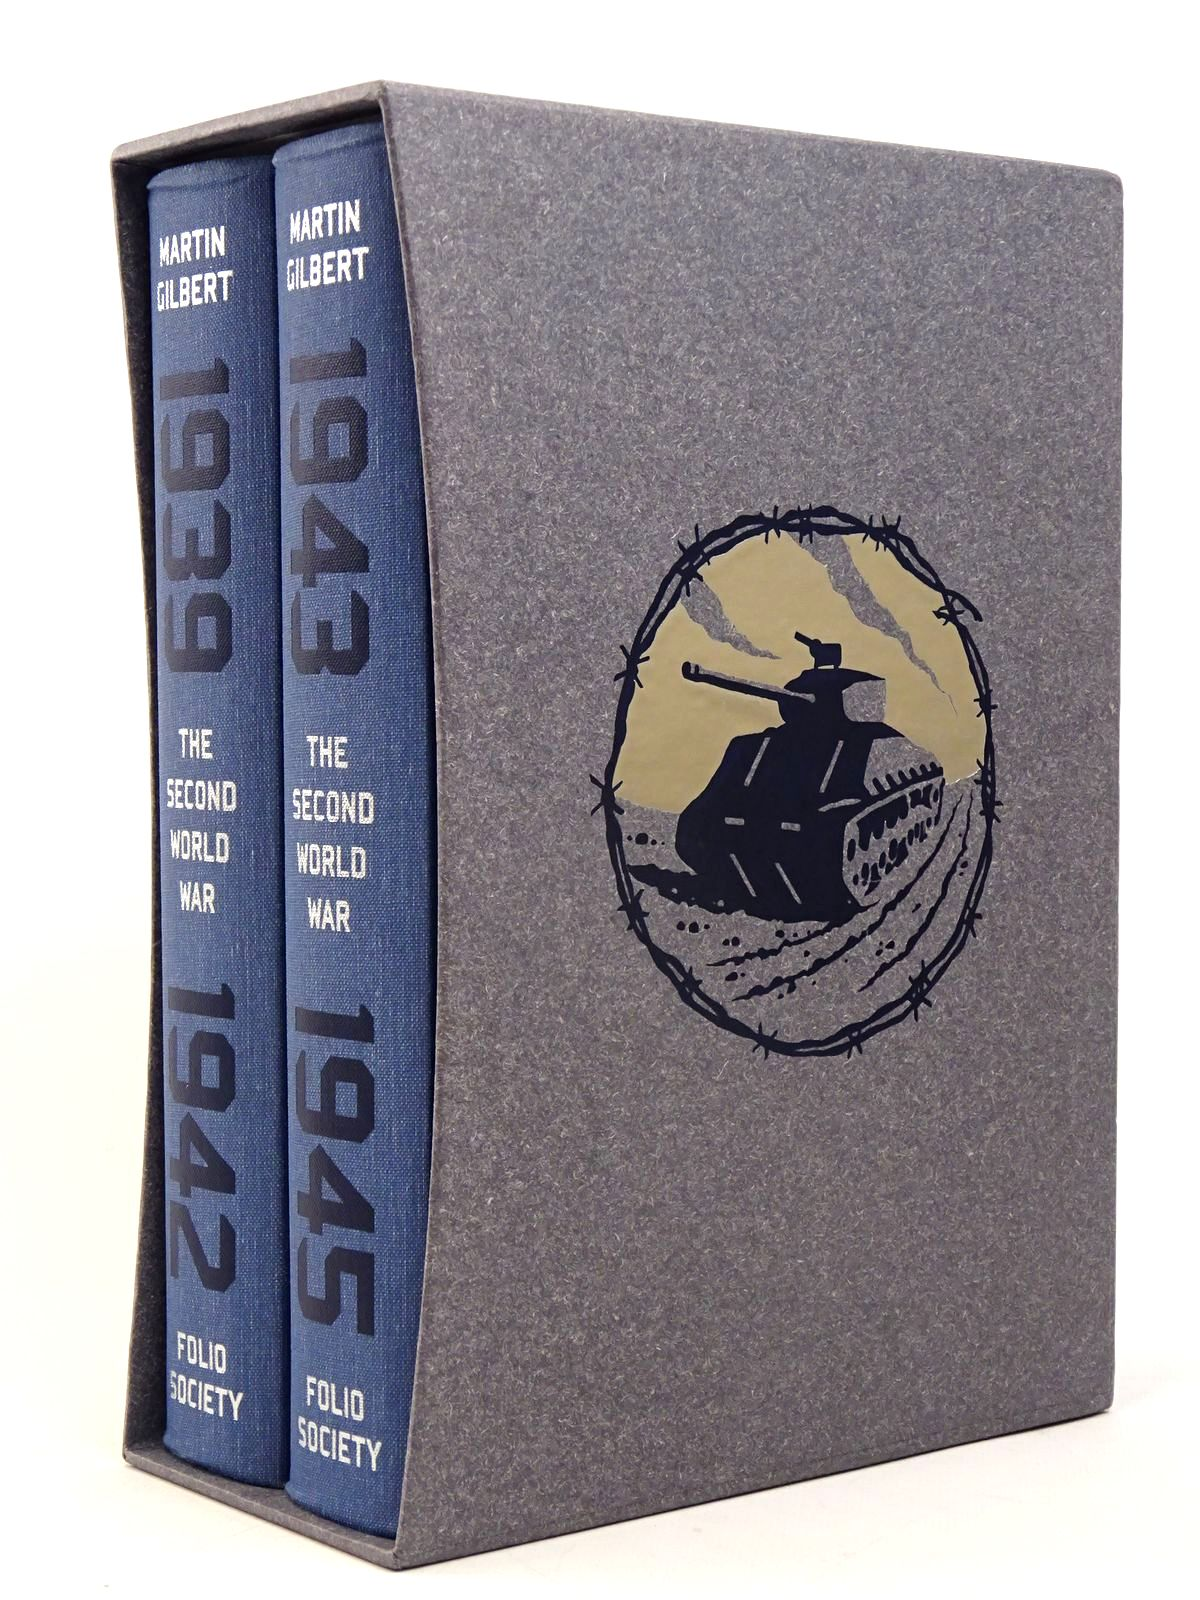 Photo of THE SECOND WORLD WAR (2 VOLUMES) written by Gilbert, Martin illustrated by McLaren, Joe published by Folio Society (STOCK CODE: 1817610)  for sale by Stella & Rose's Books